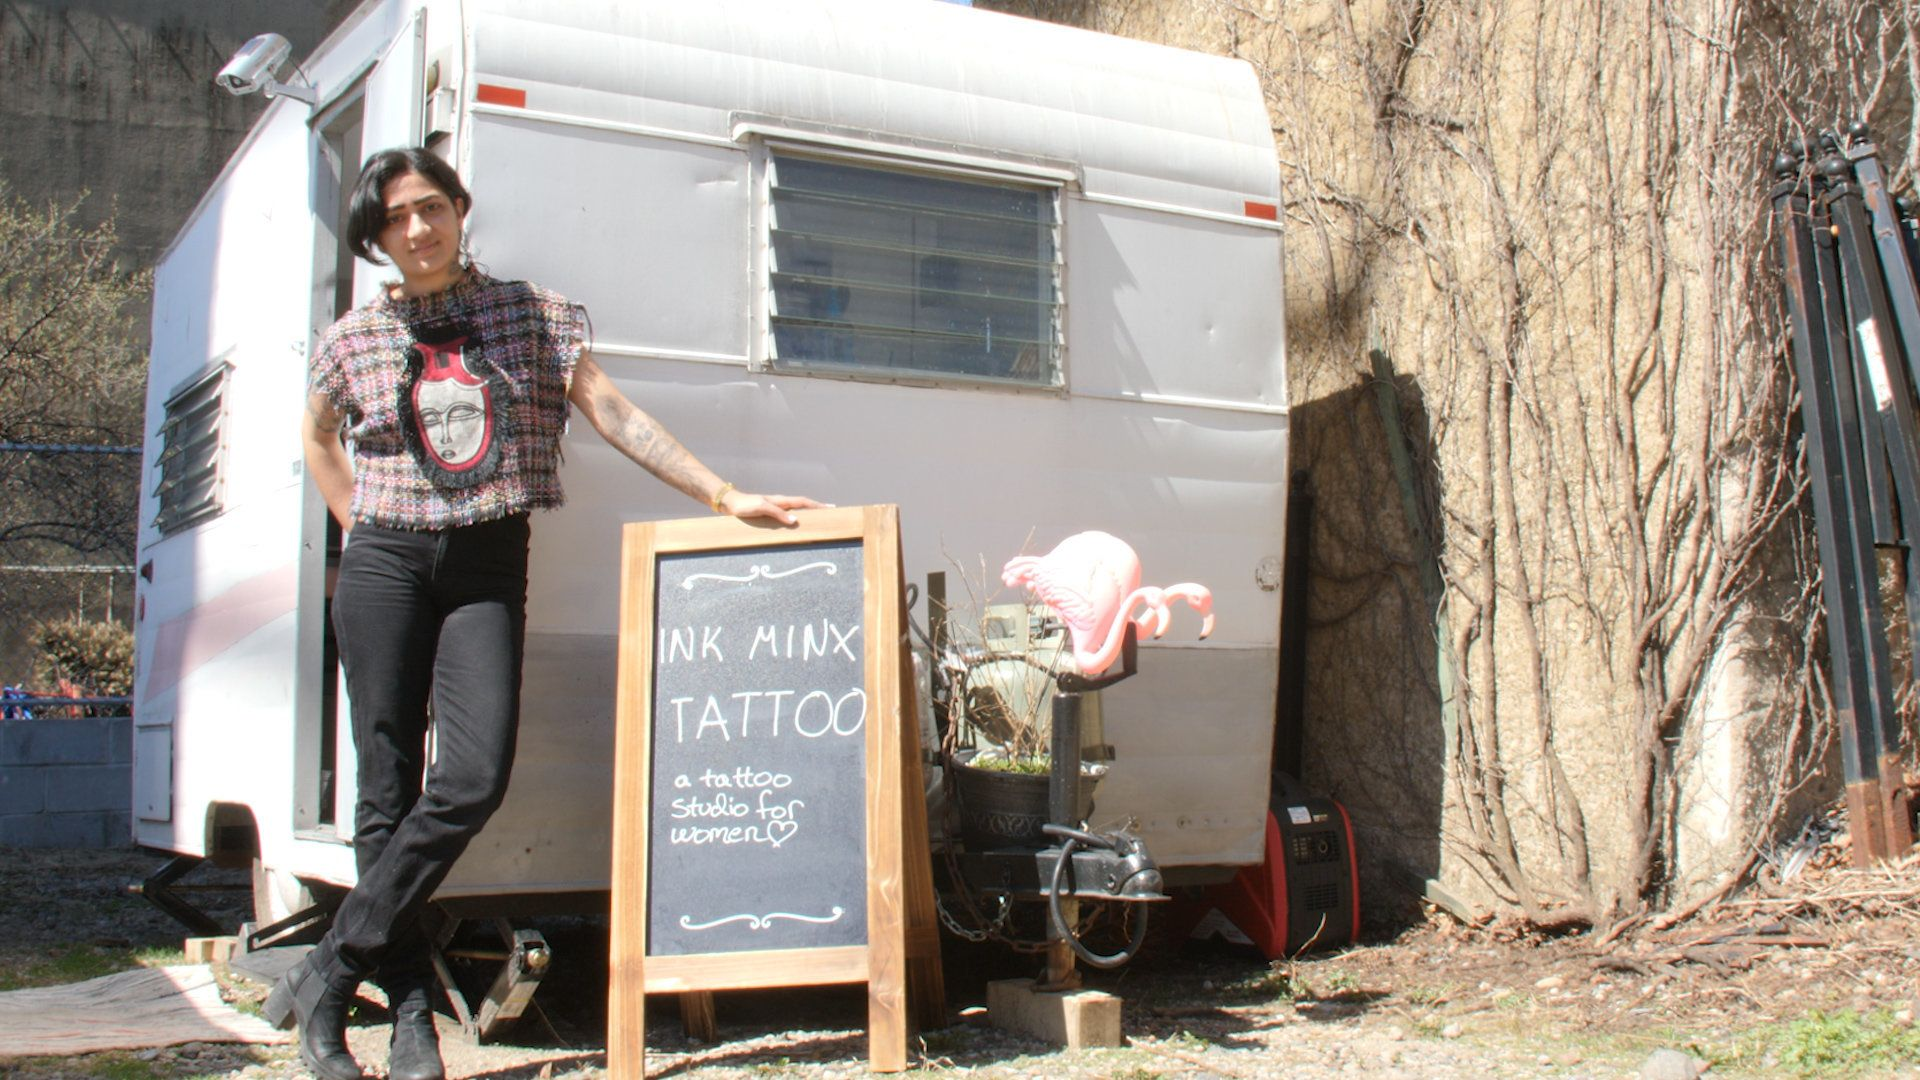 This Muslim woman turned her trailer into a tattoo parlor for women